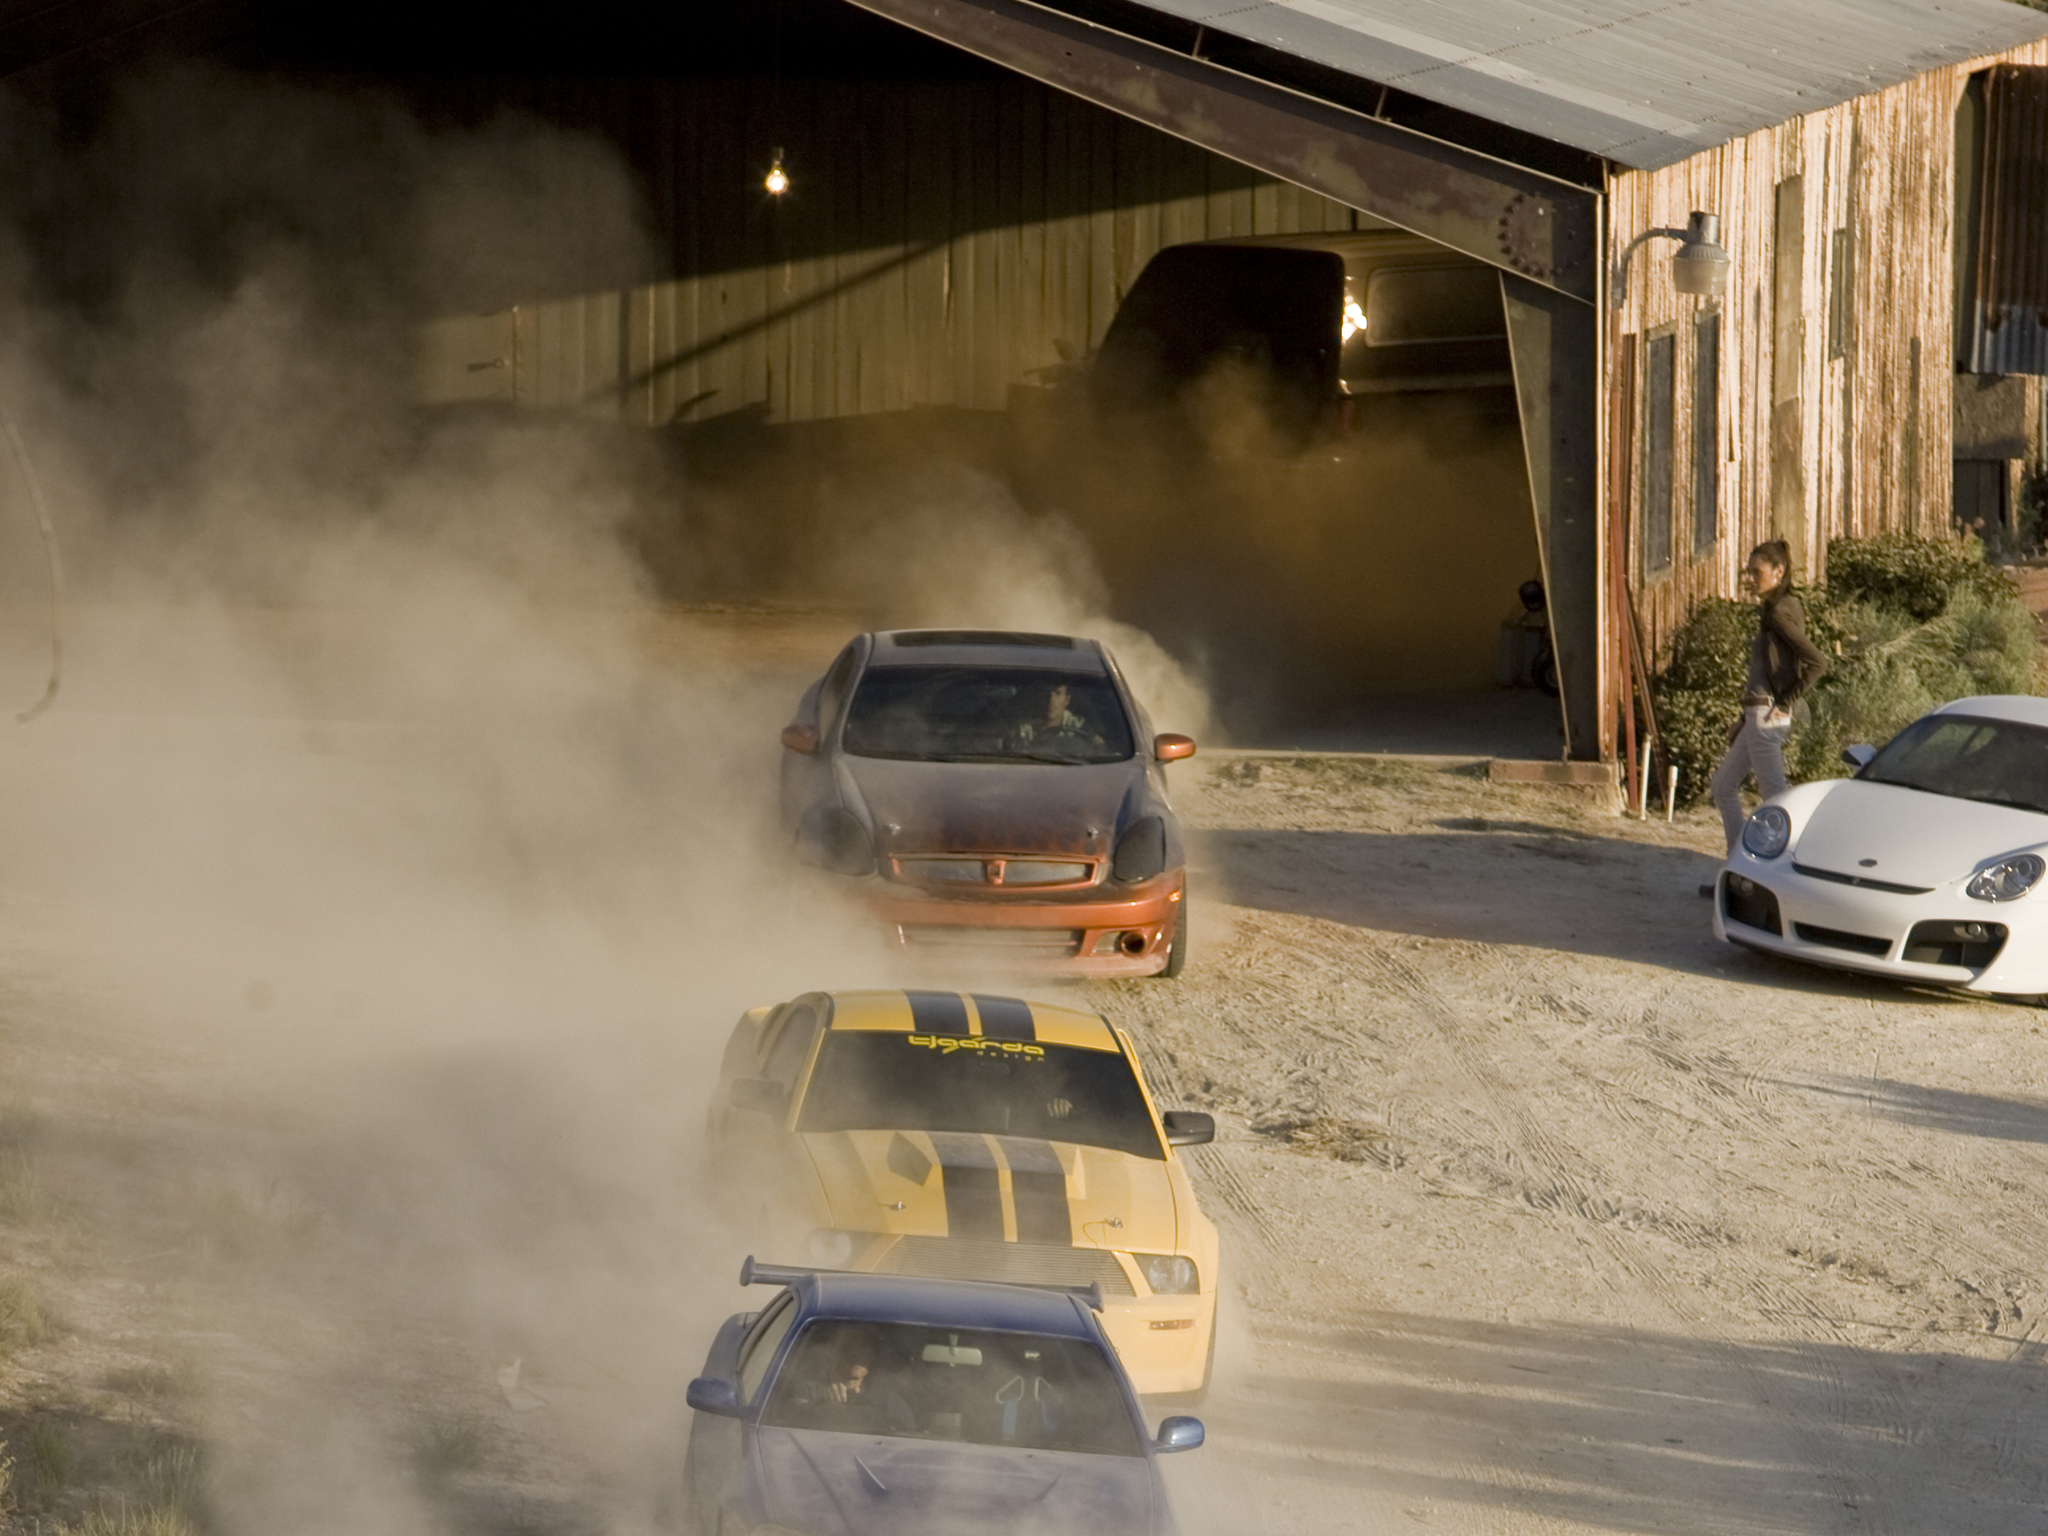 The mine chase from 'Fast & Furious' (2009)